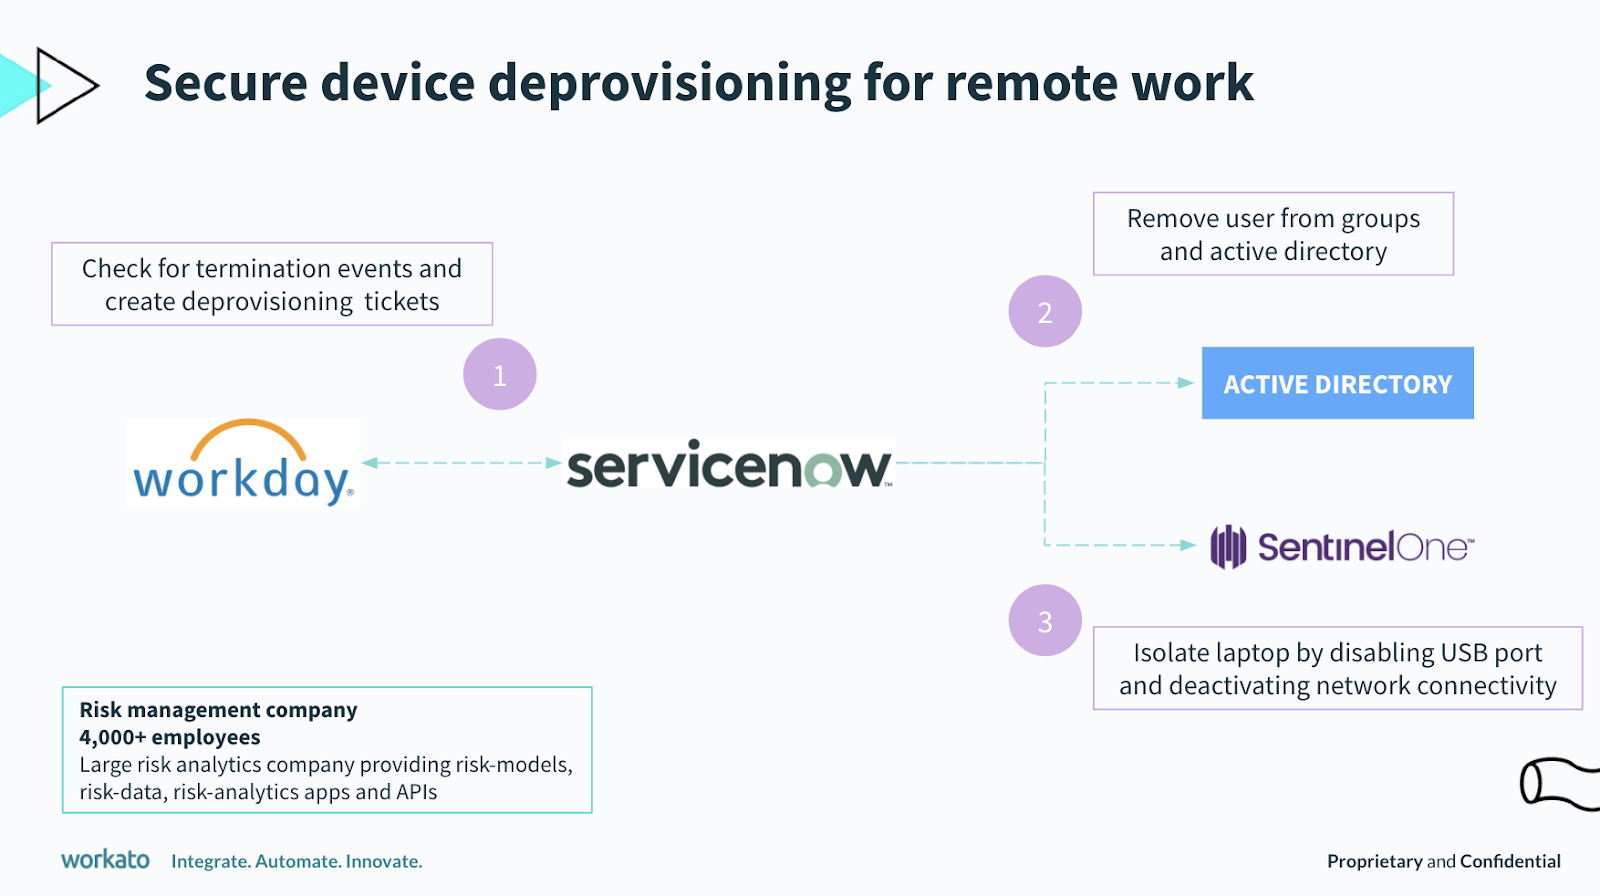 The workflow for device de-provisioning